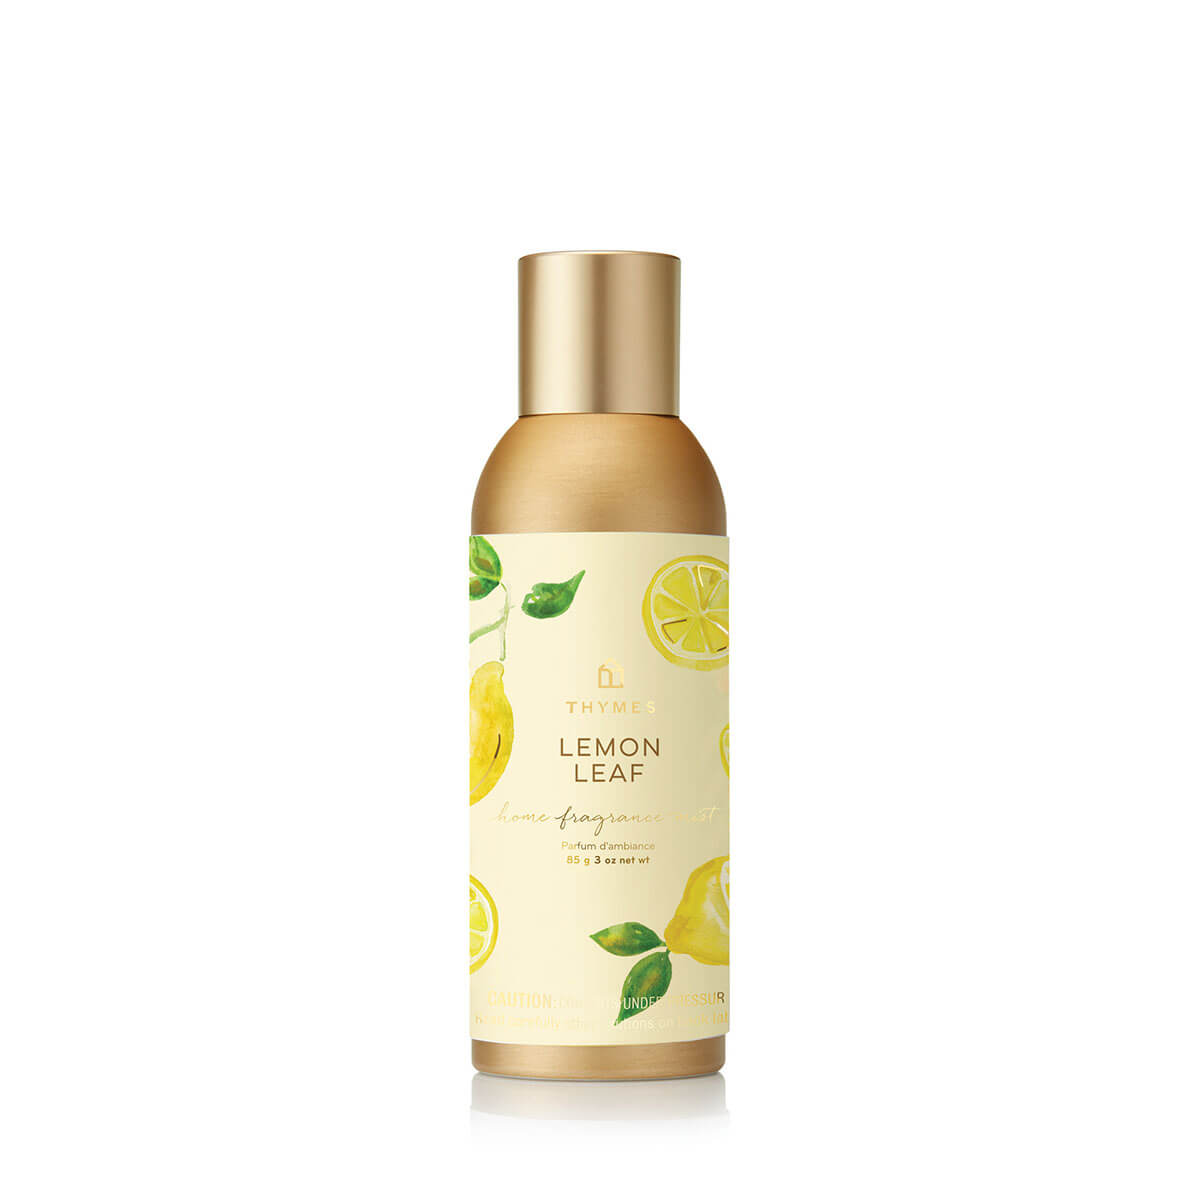 Lemon Leaf Home Fragrance Mist, 3.0 oz